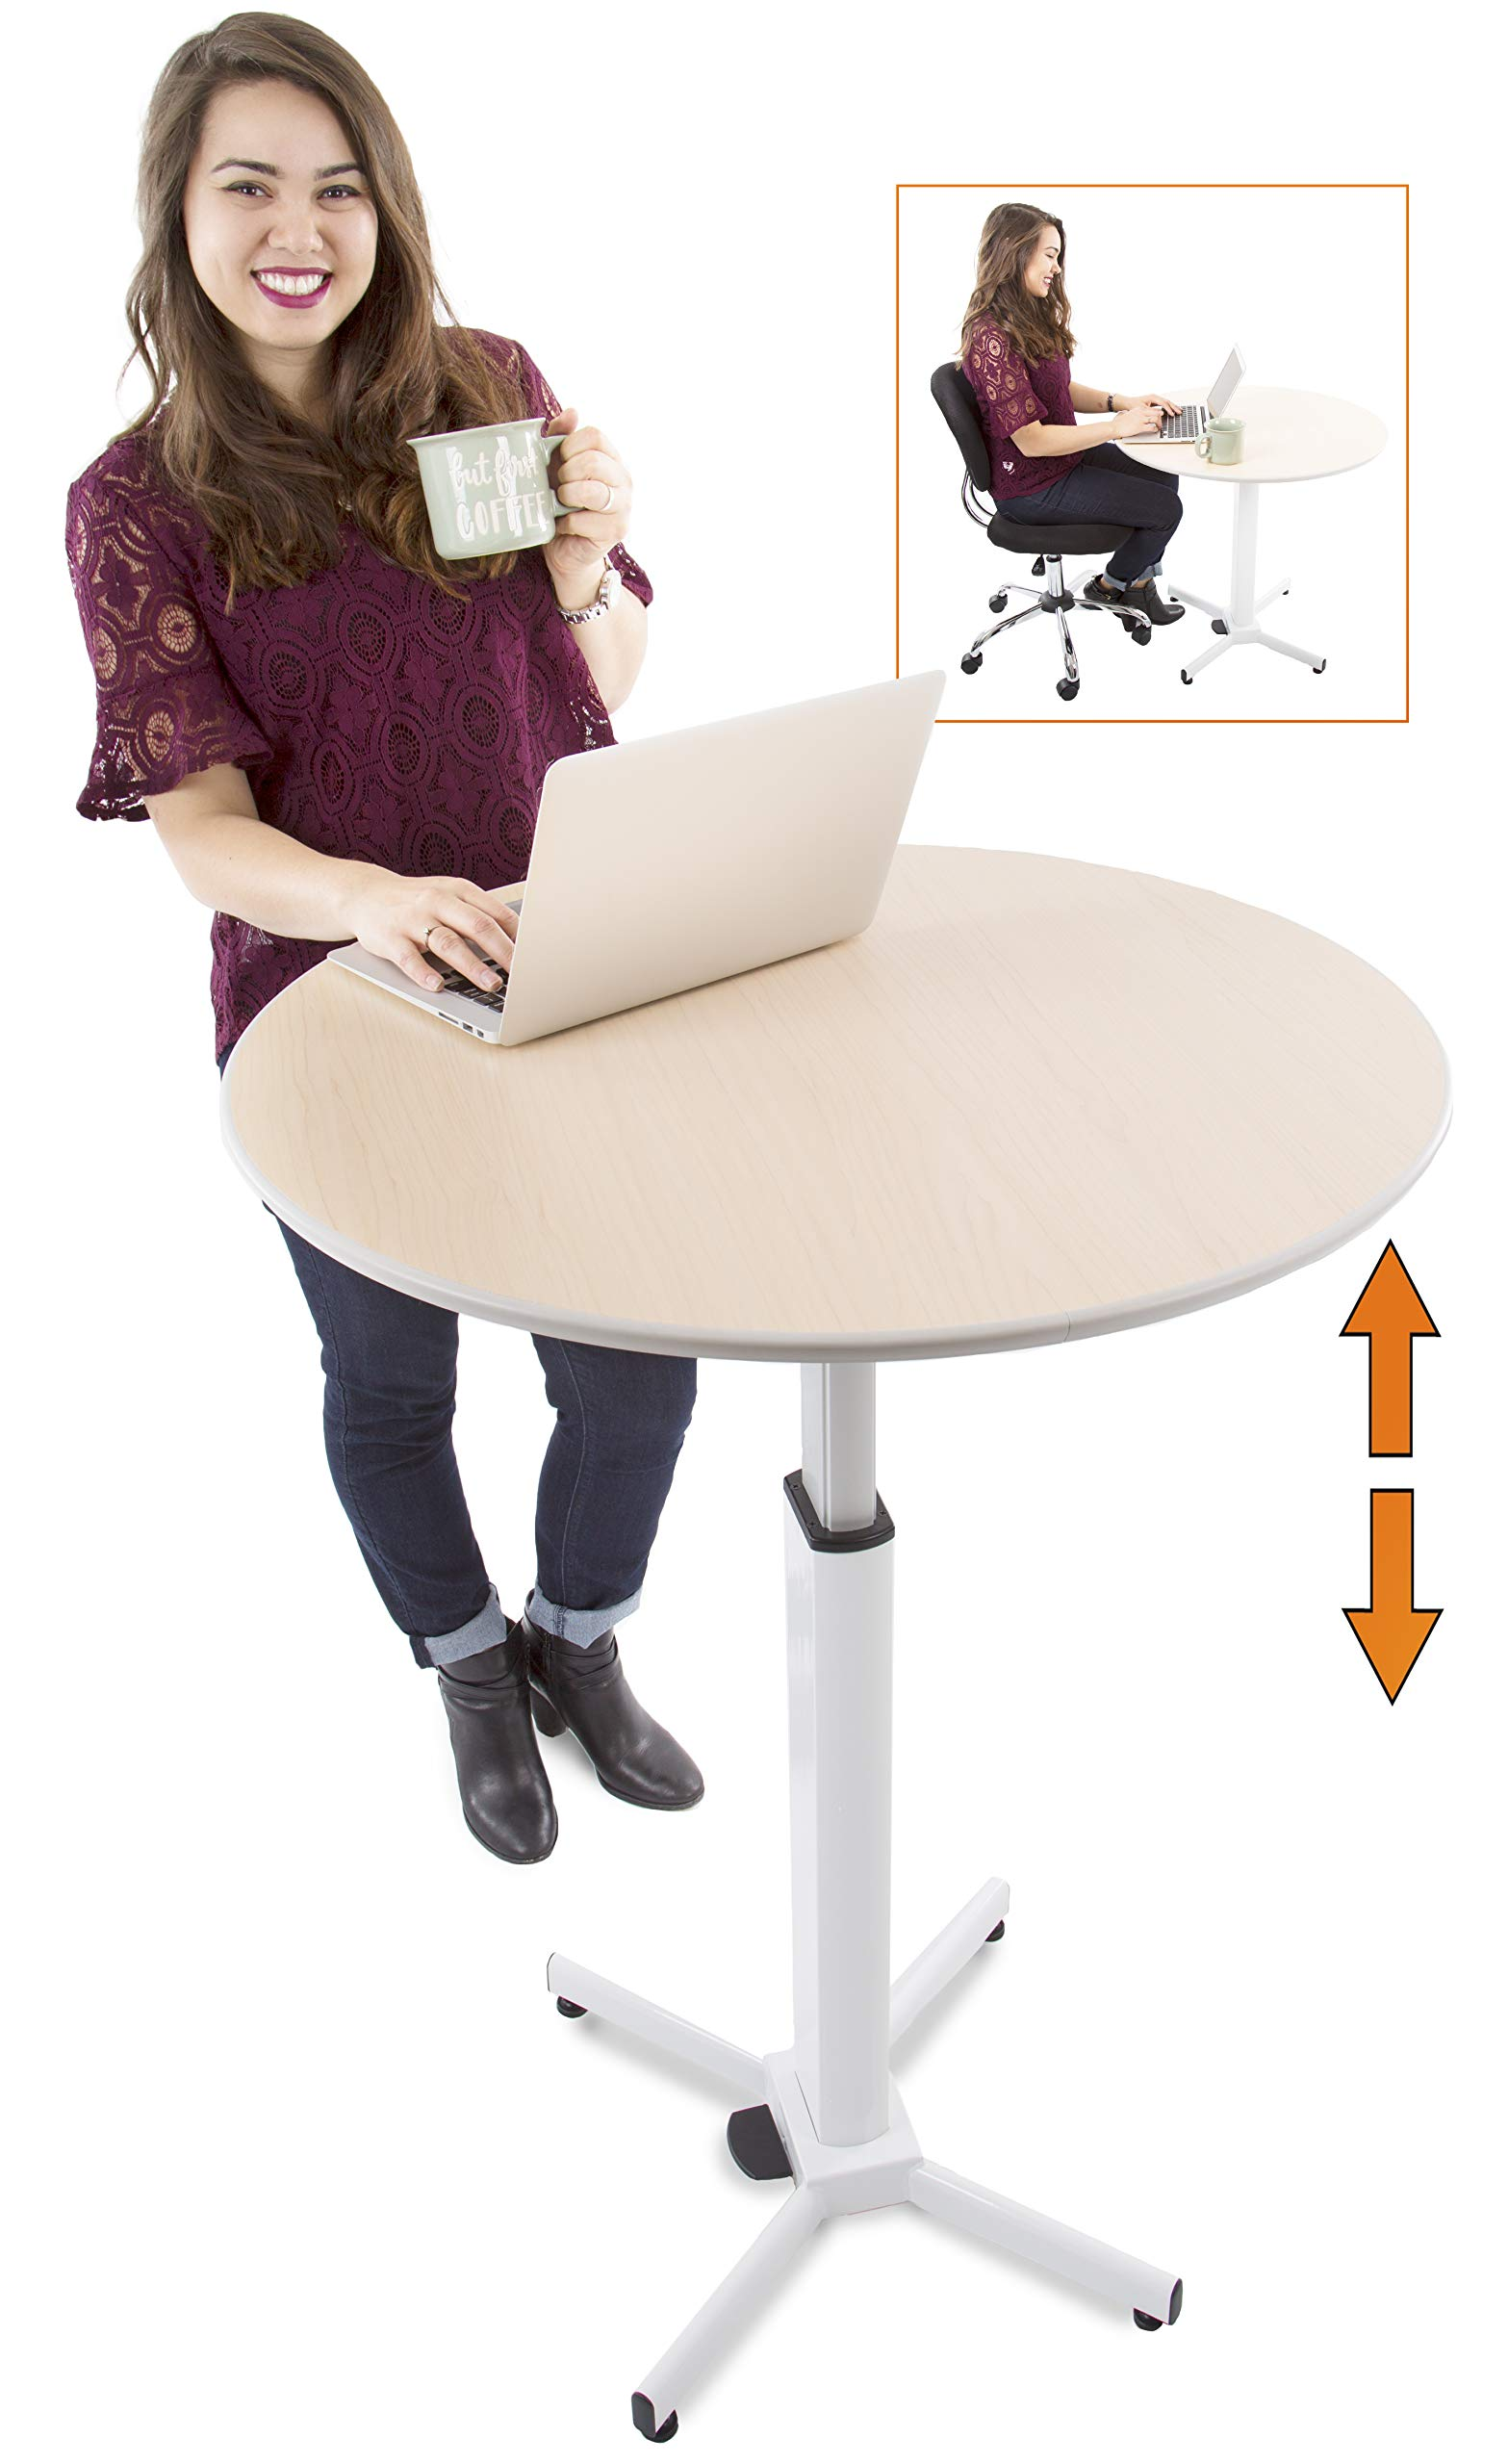 Adjustable Height Multifunctional Round Table - Perfect use for Cocktail Table, Sit to Stand Desk, Side Table - and More! by Stand Steady